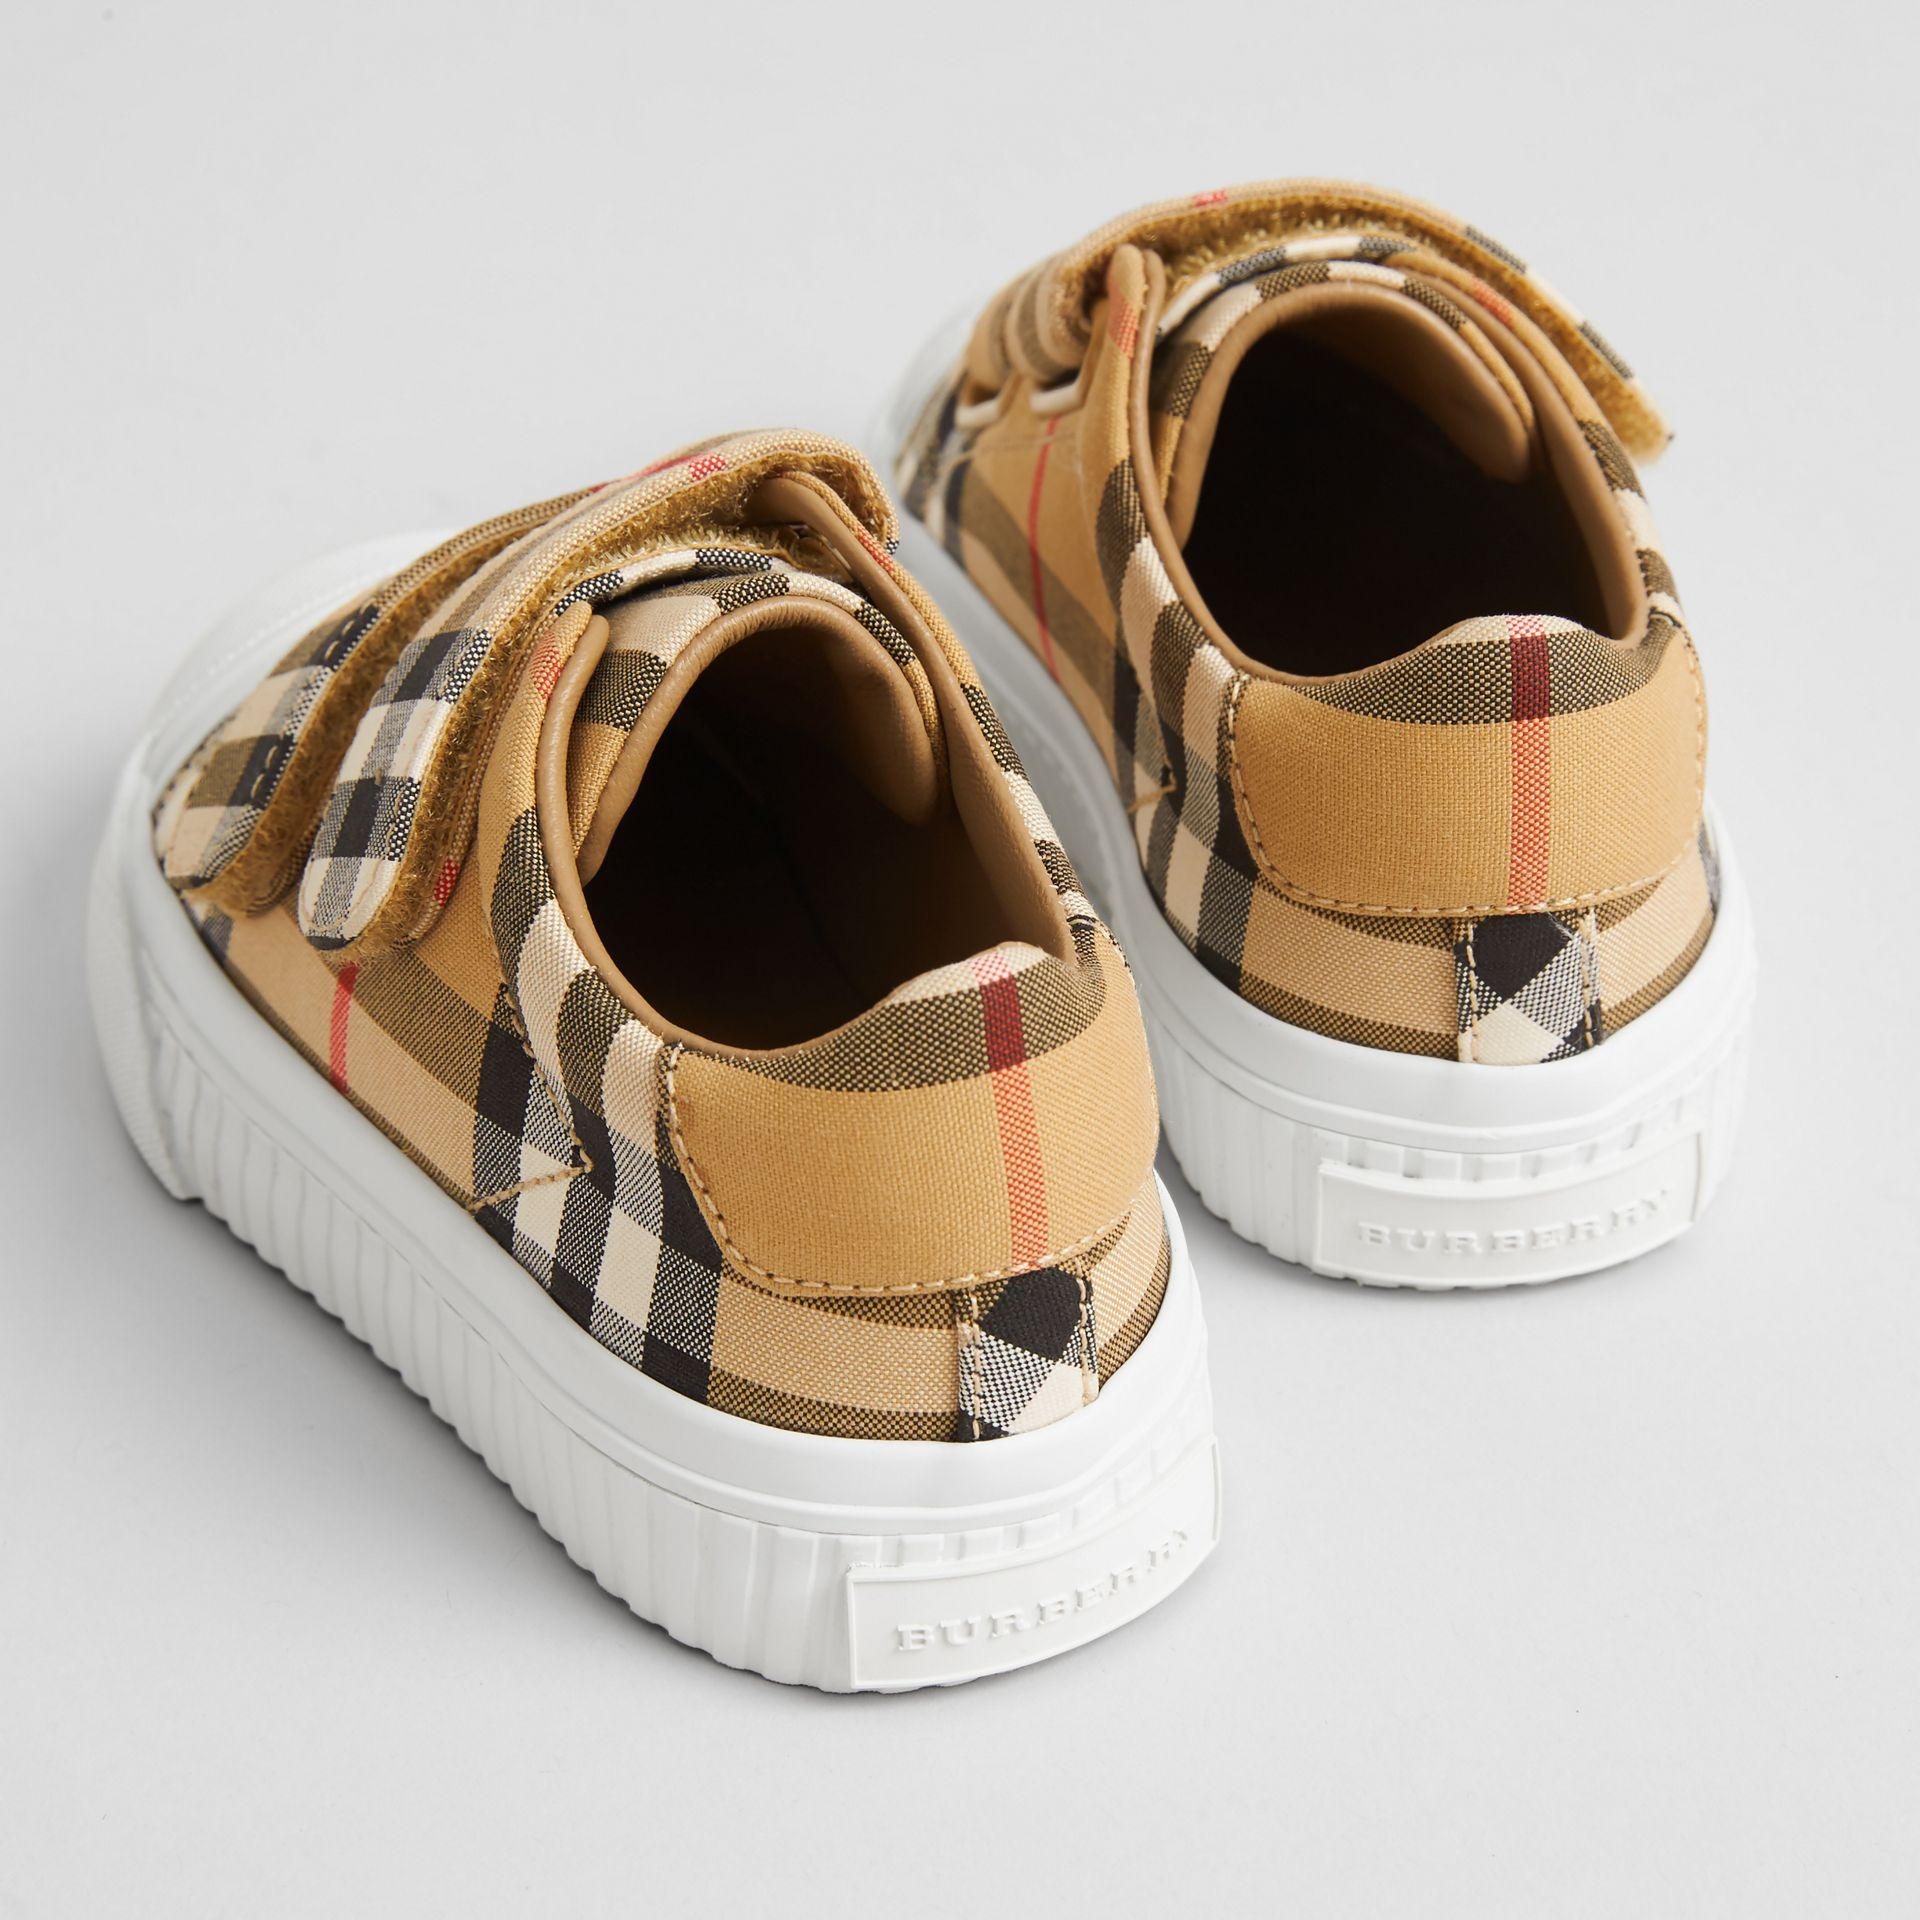 Sneakers en cuir à motif Vintage check (Blanc Optique/noir) - Enfant | Burberry - photo de la galerie 2